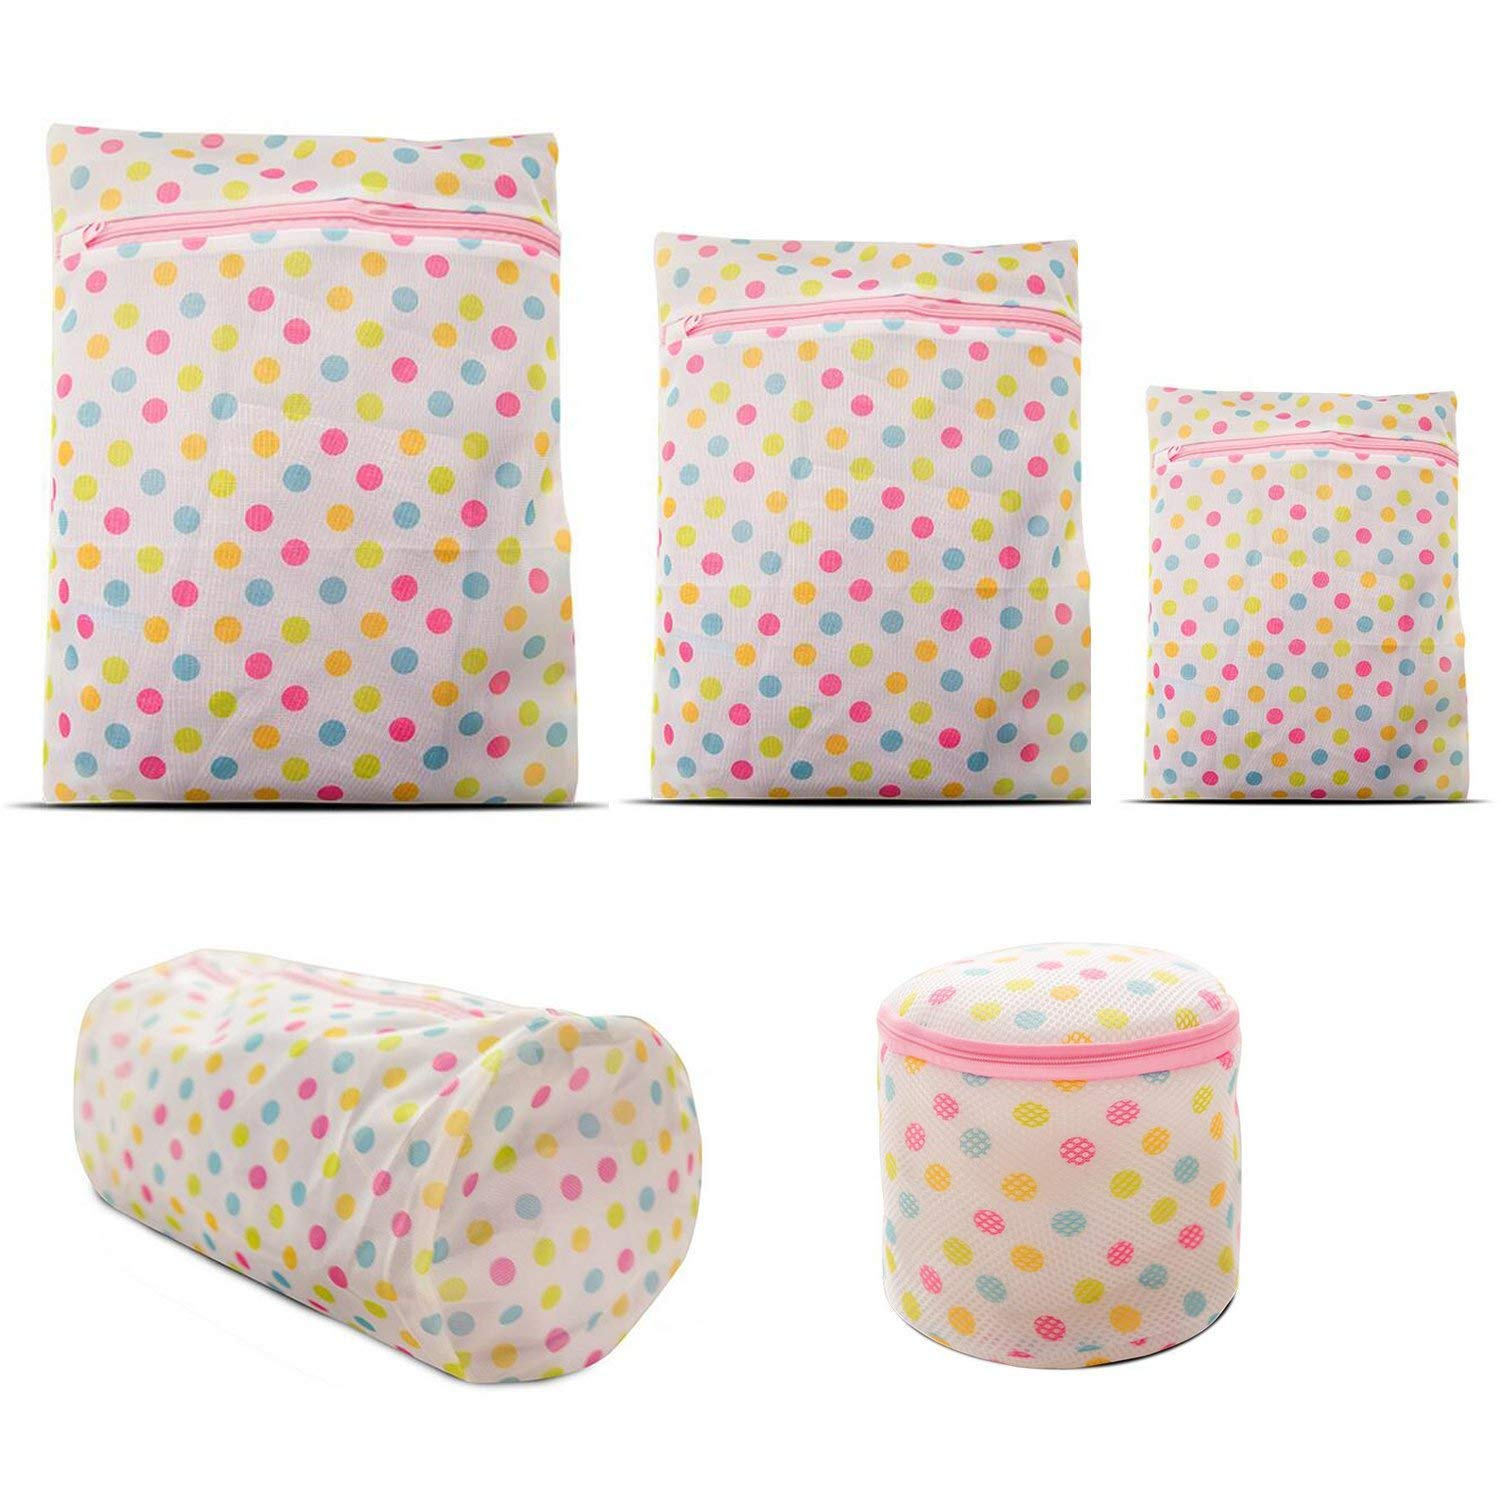 Laundry Bags 5 Packs Laundry Net ONEGenug Mesh Washing Bags with Zipper for Underwear, Bra, Socks, Shirt, Sweater, Baby Clothes etc.